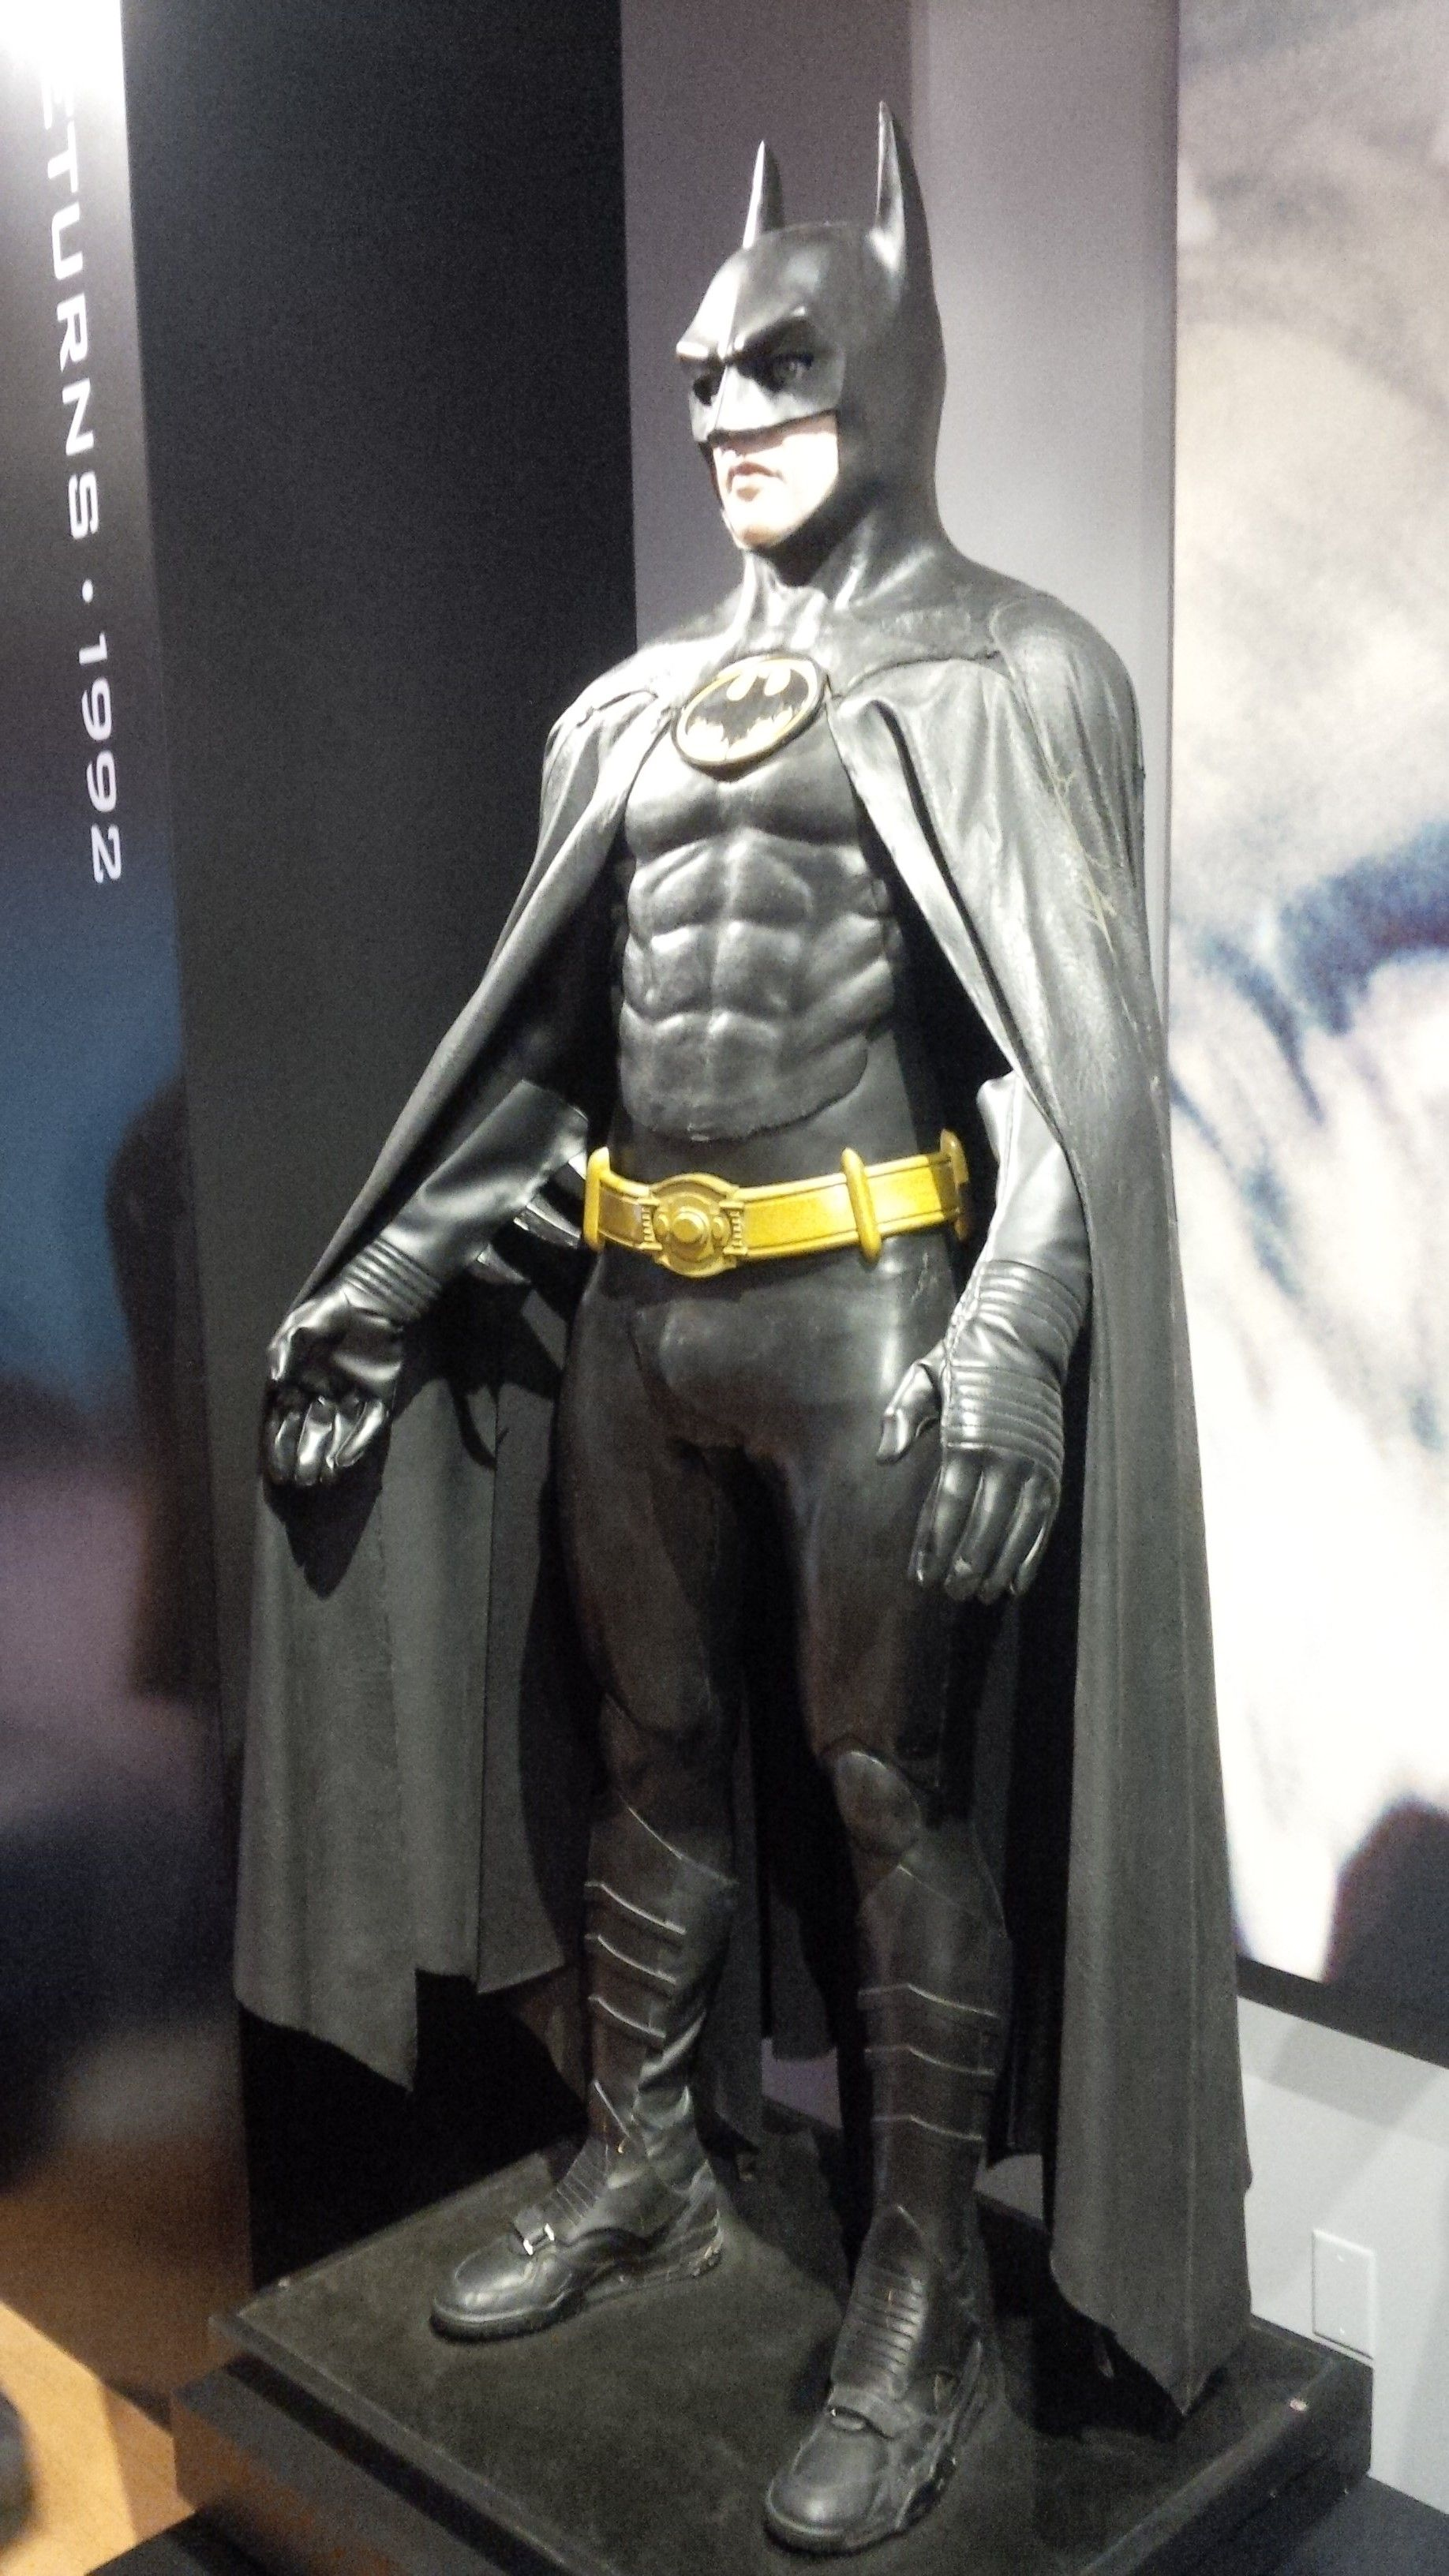 62b43a662e8 Batman Keaton Costume - Warner Bros. Studio Tour | The Dark Knight ...